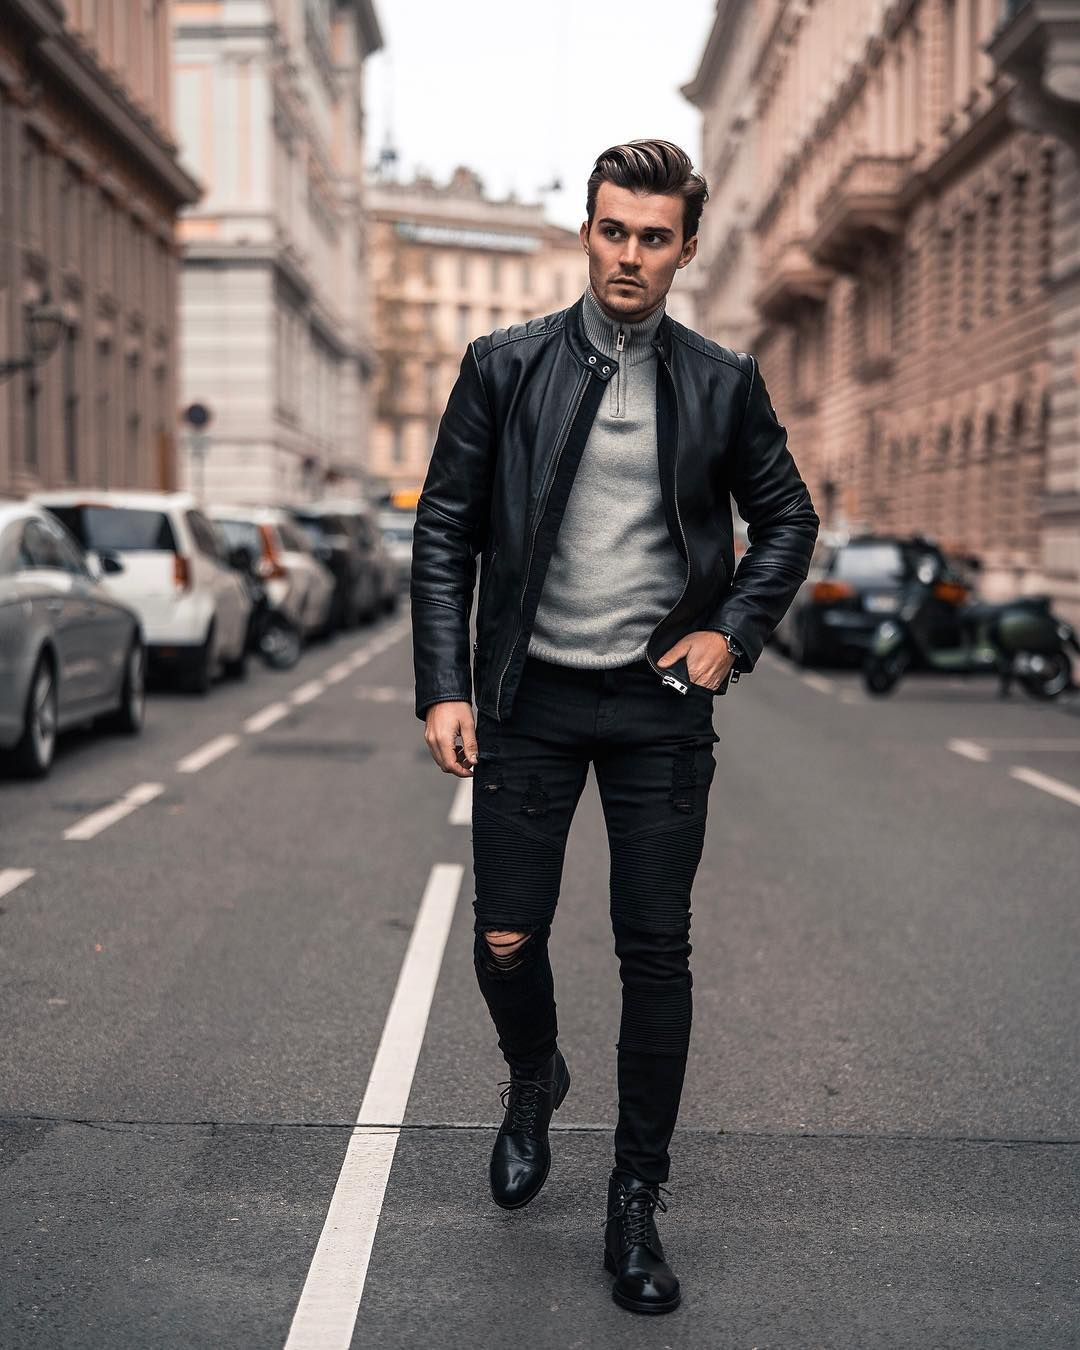 David Peric On Instagram Quick Shooting On A Rainy Day How Was Your Sunday Leather Jacket Outfit Men Men S Streetwear Mens Fashion Casual [ 1350 x 1080 Pixel ]